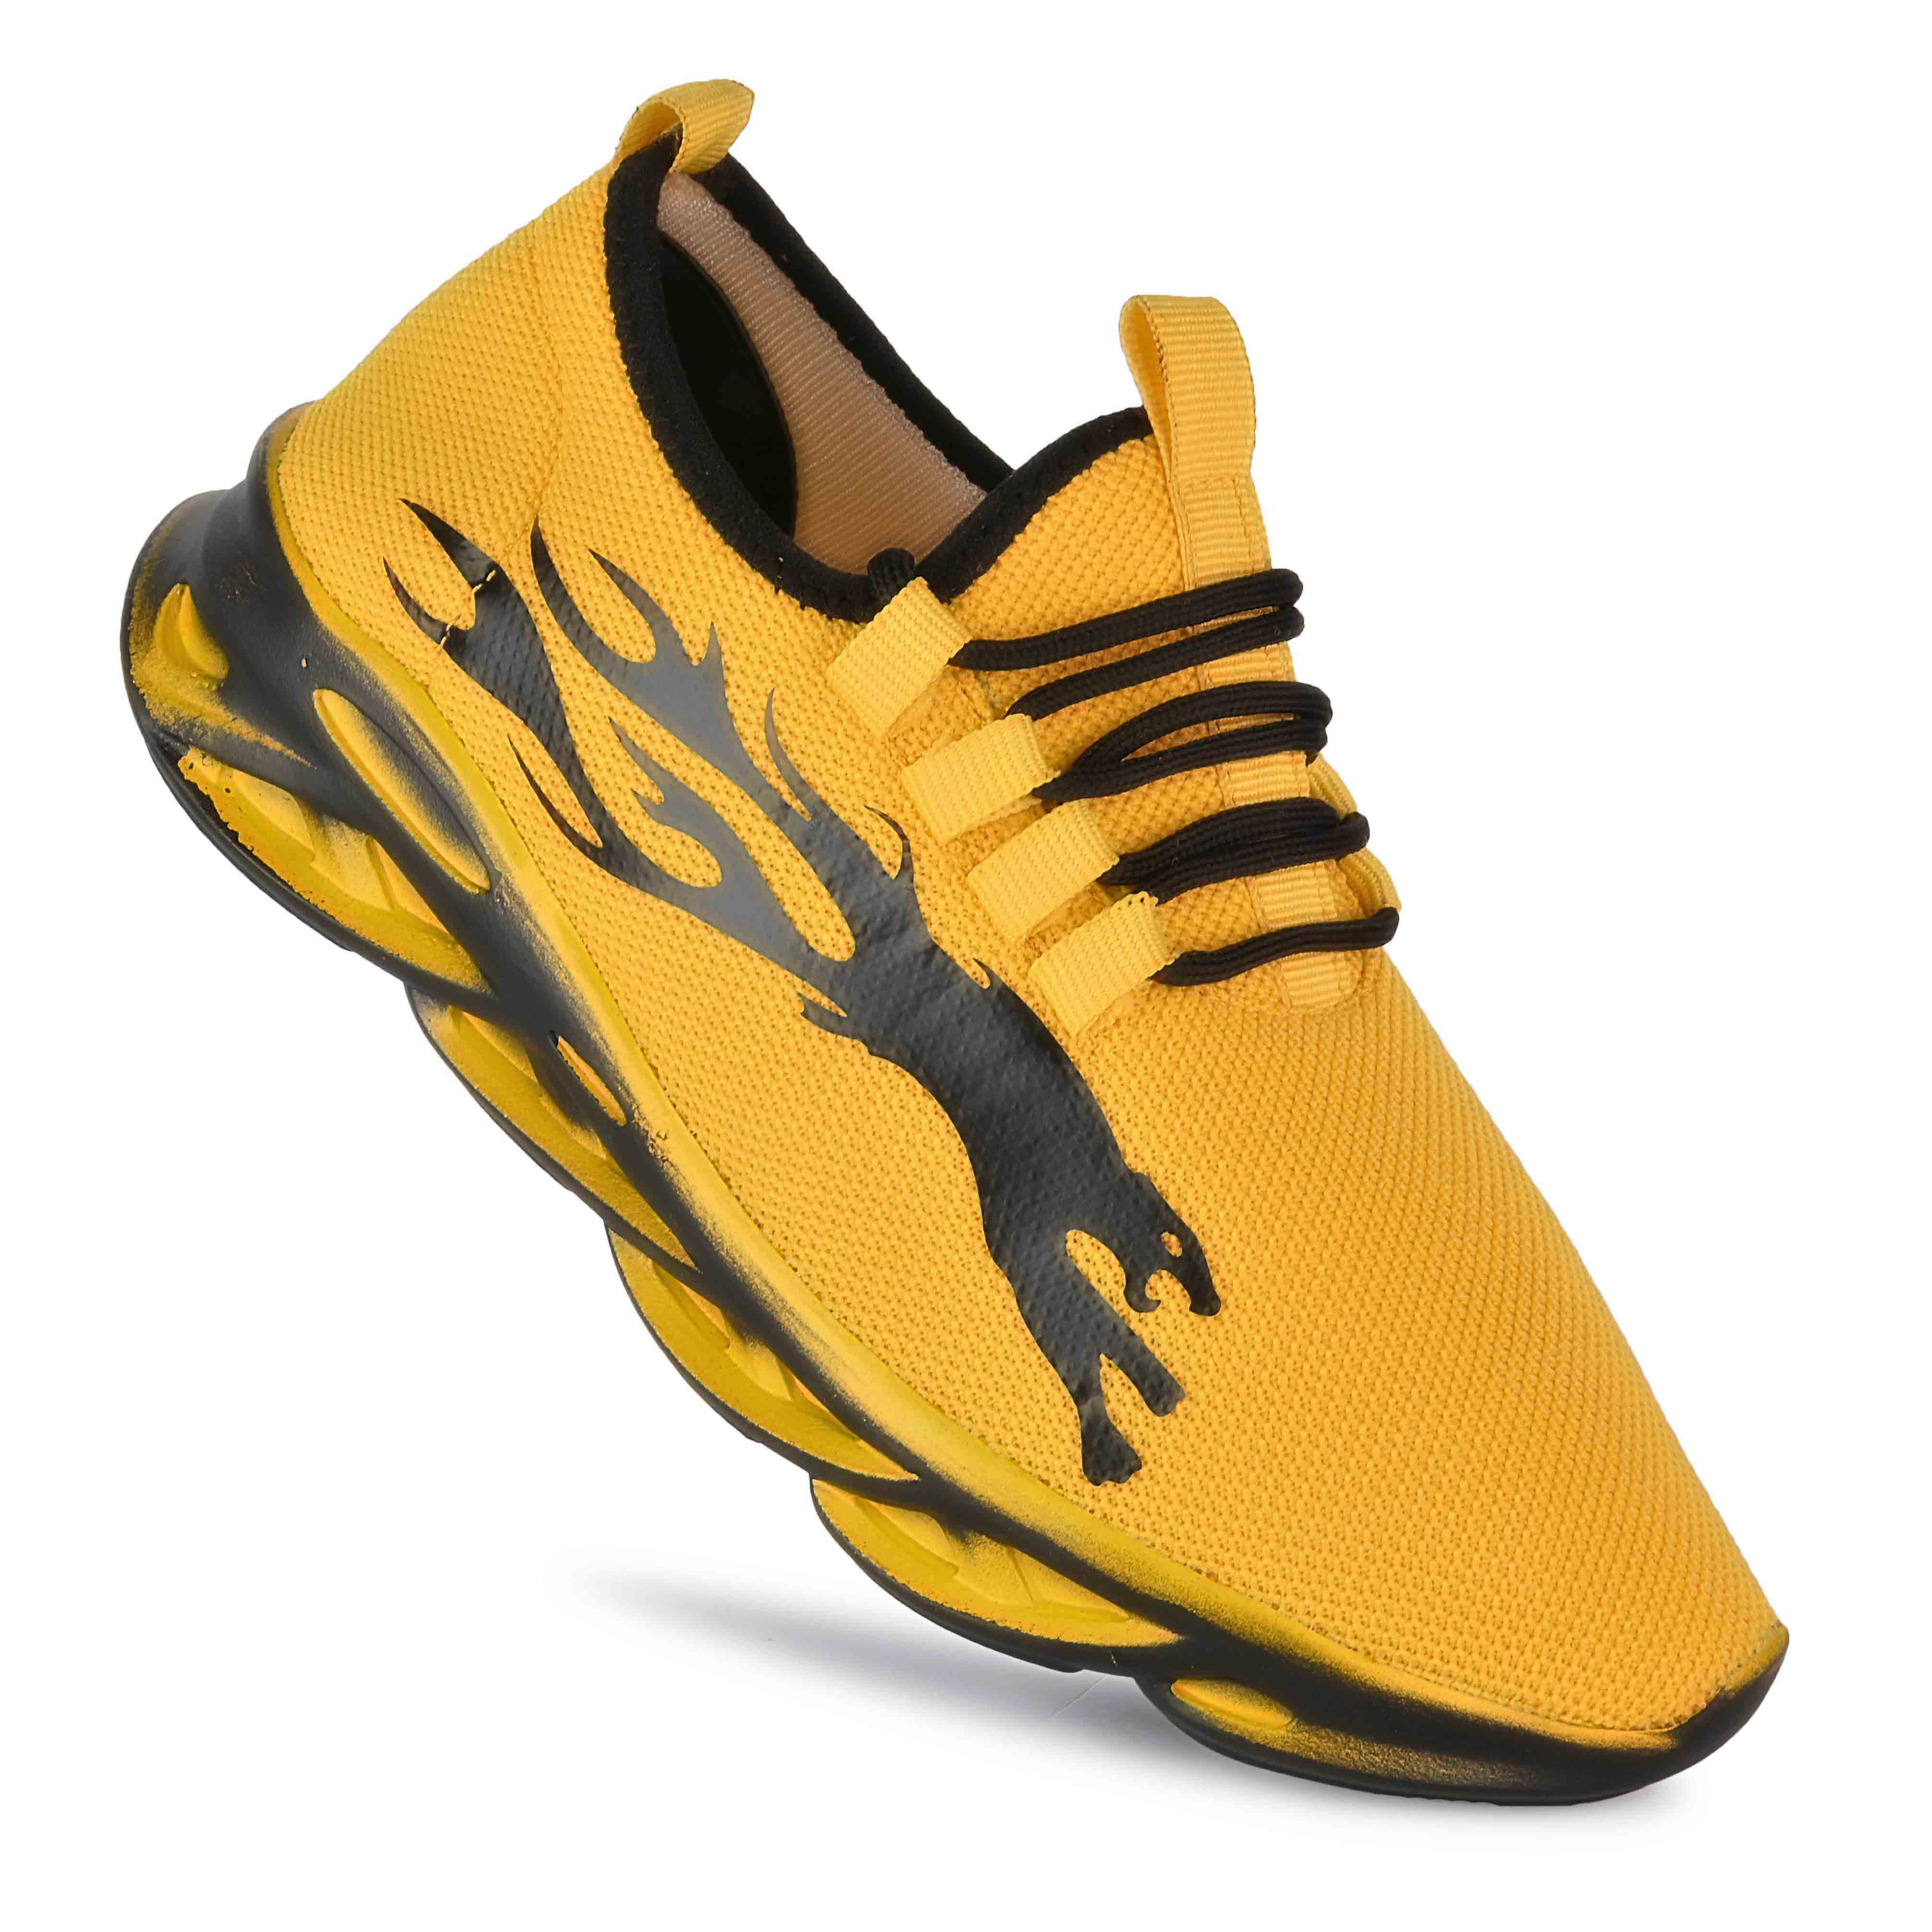 JK Port Original Presents Stylish Comfortable & Trendy Yellow Sports Shoe JKPSB79YLW (Yellow, 6-10, 8 PAIR)